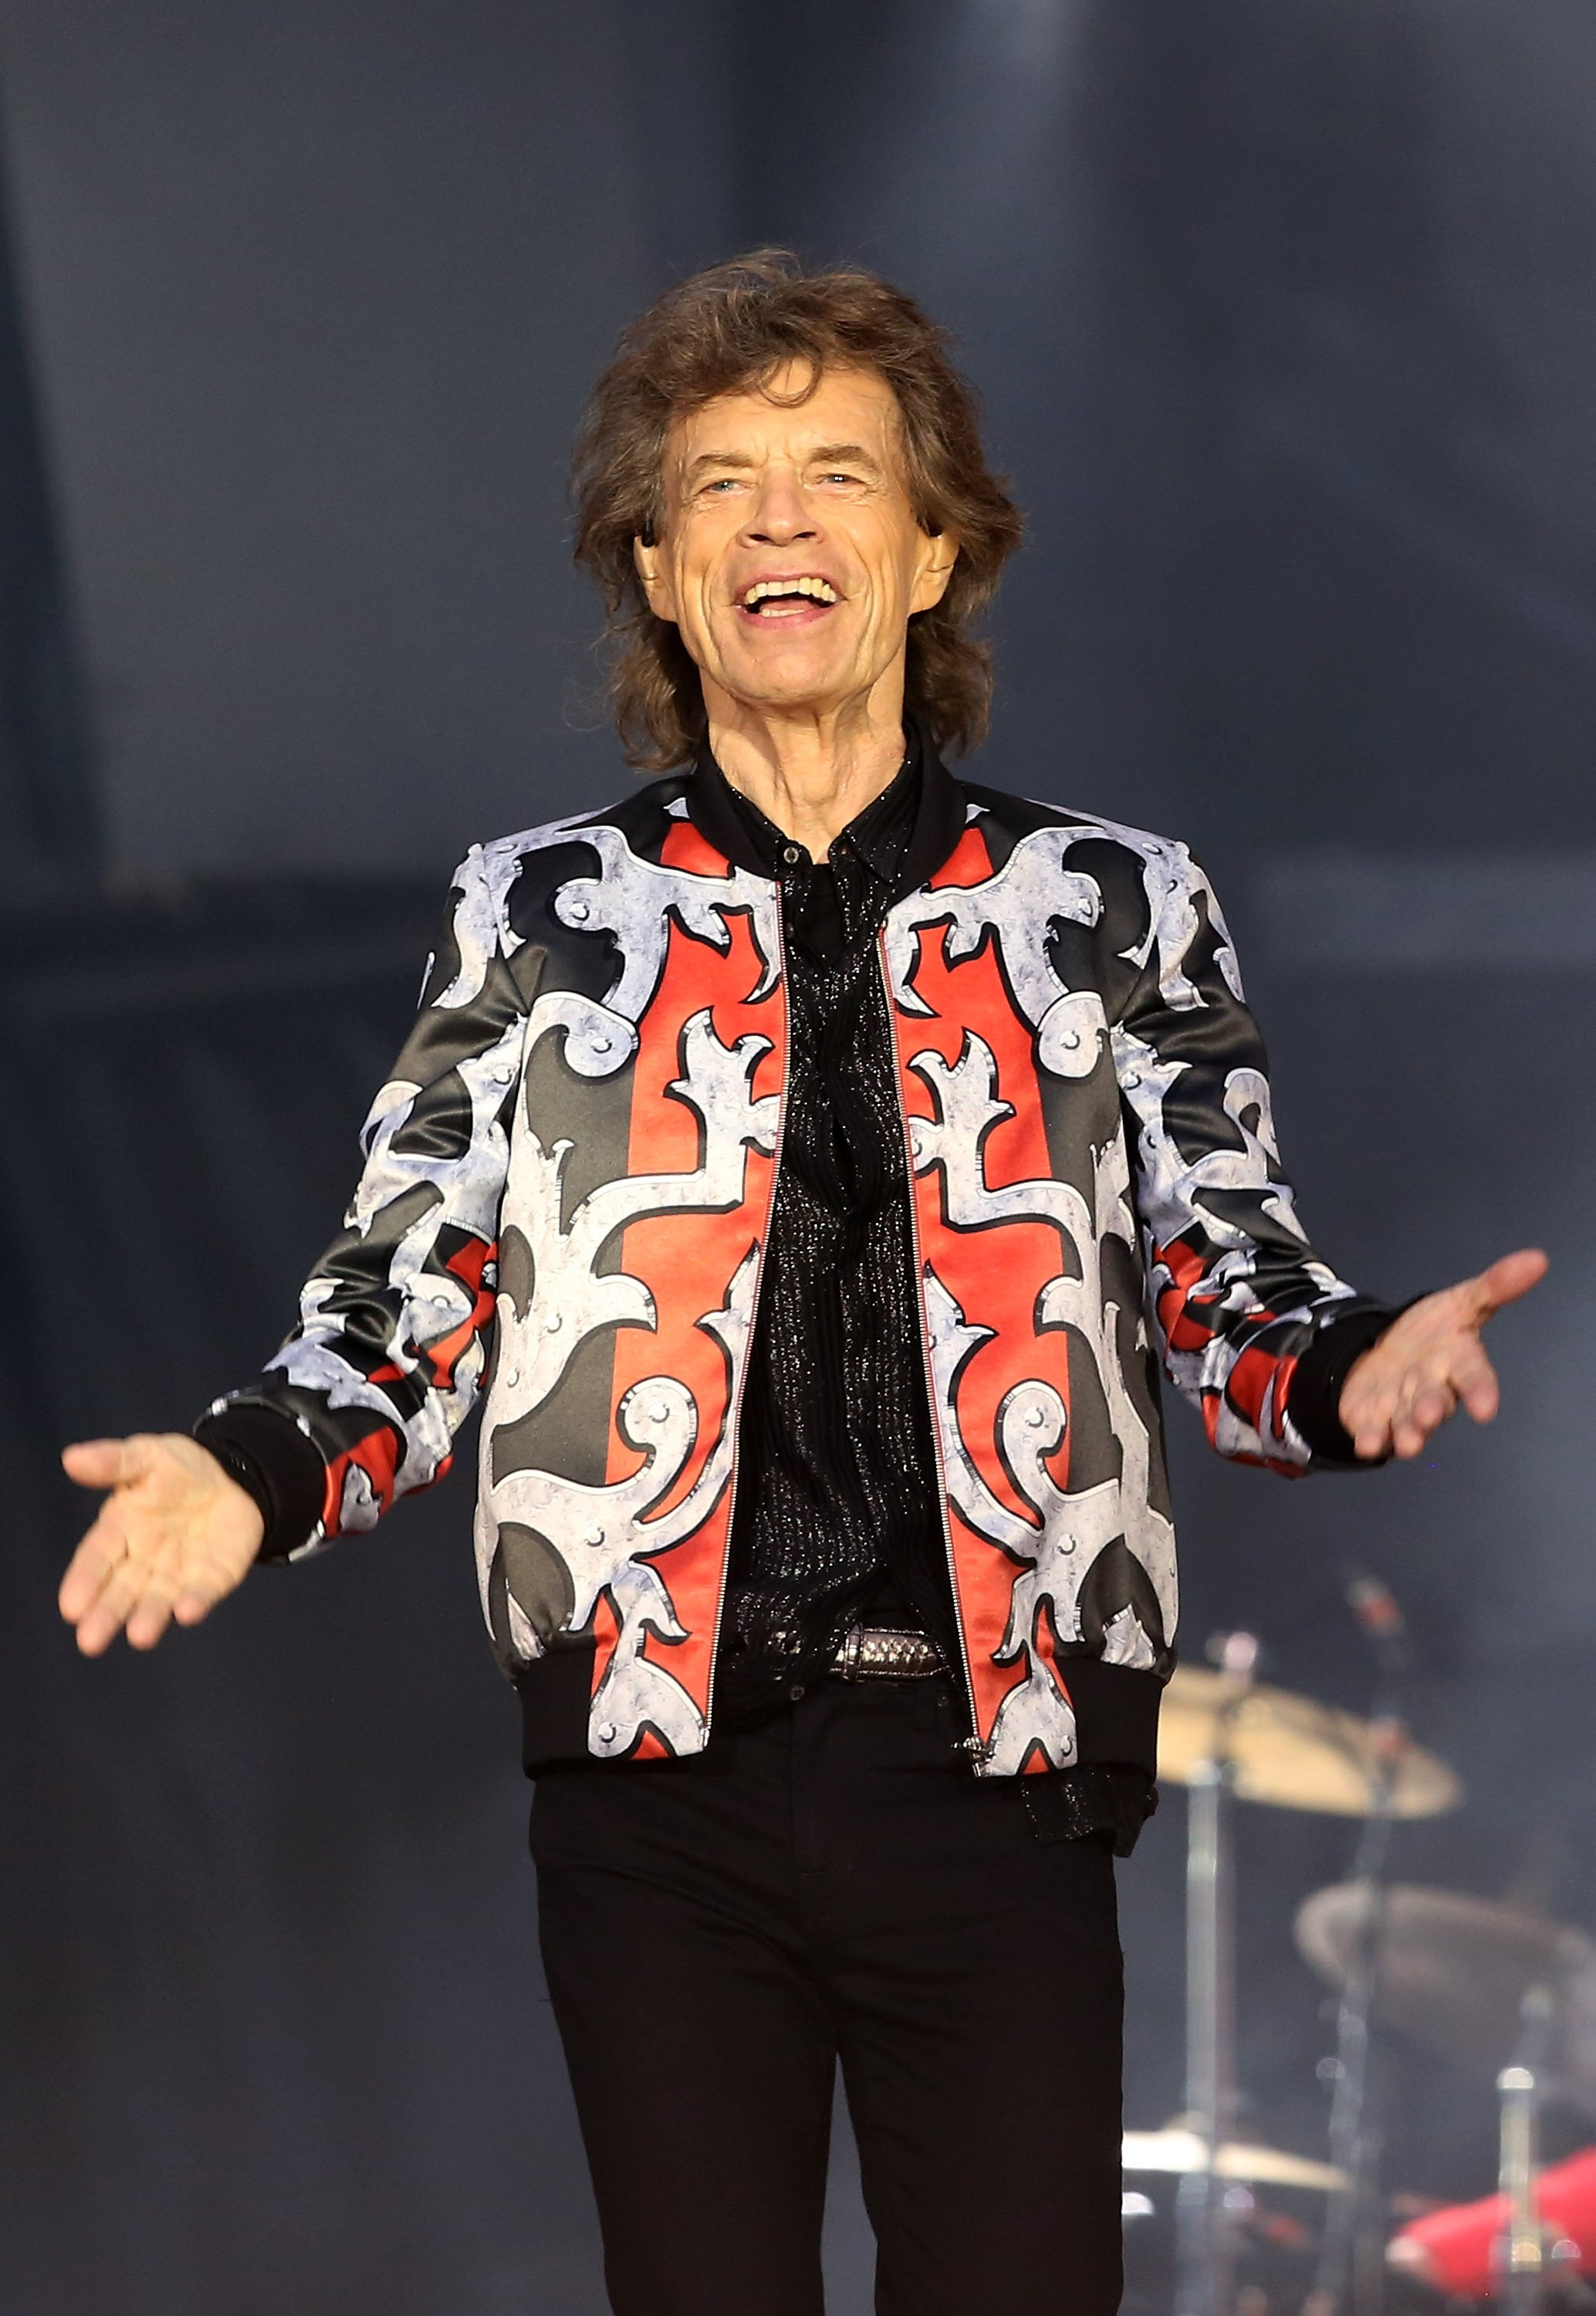 """Mick Jagger performs on stage at the """"No Filter"""" tour in London, England on May 25, 2018 